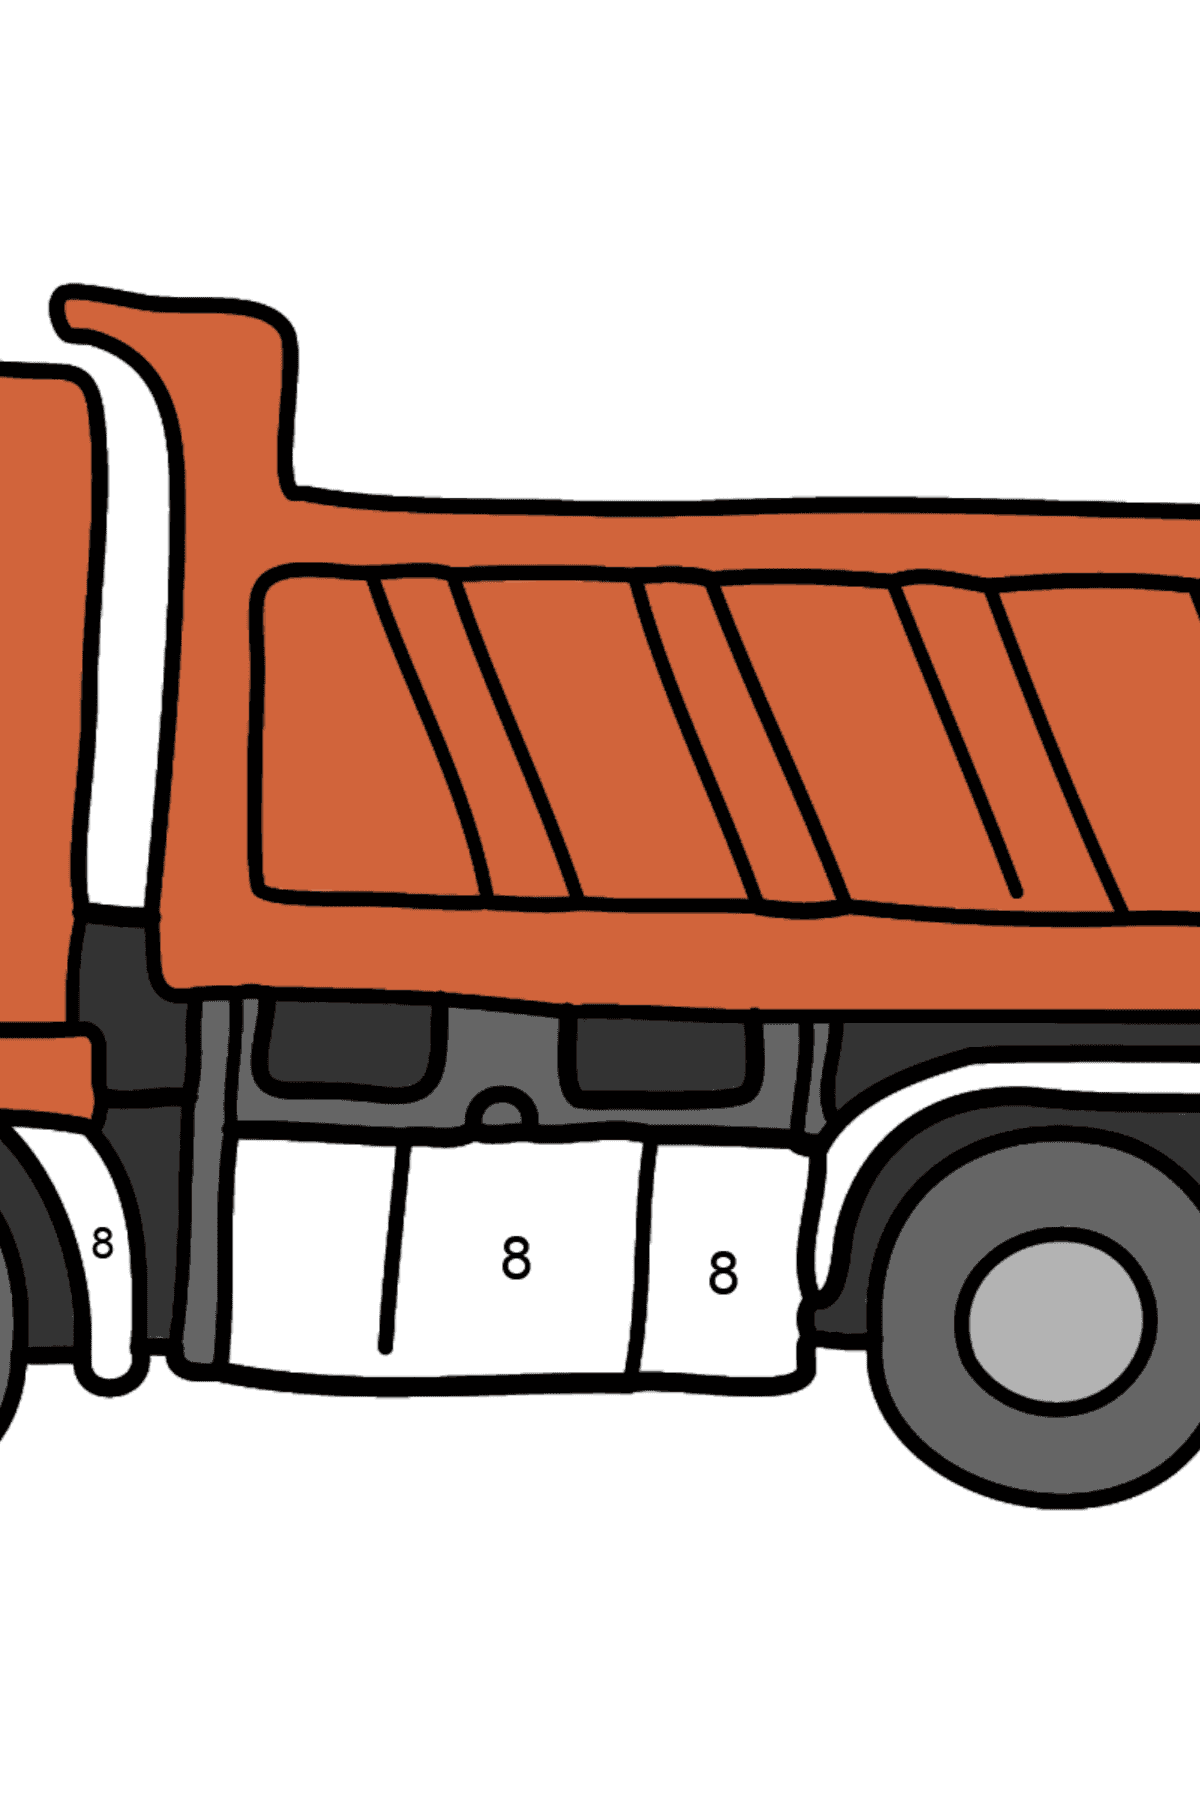 Coloring Page - A Dump Truck - Coloring by Numbers for Kids